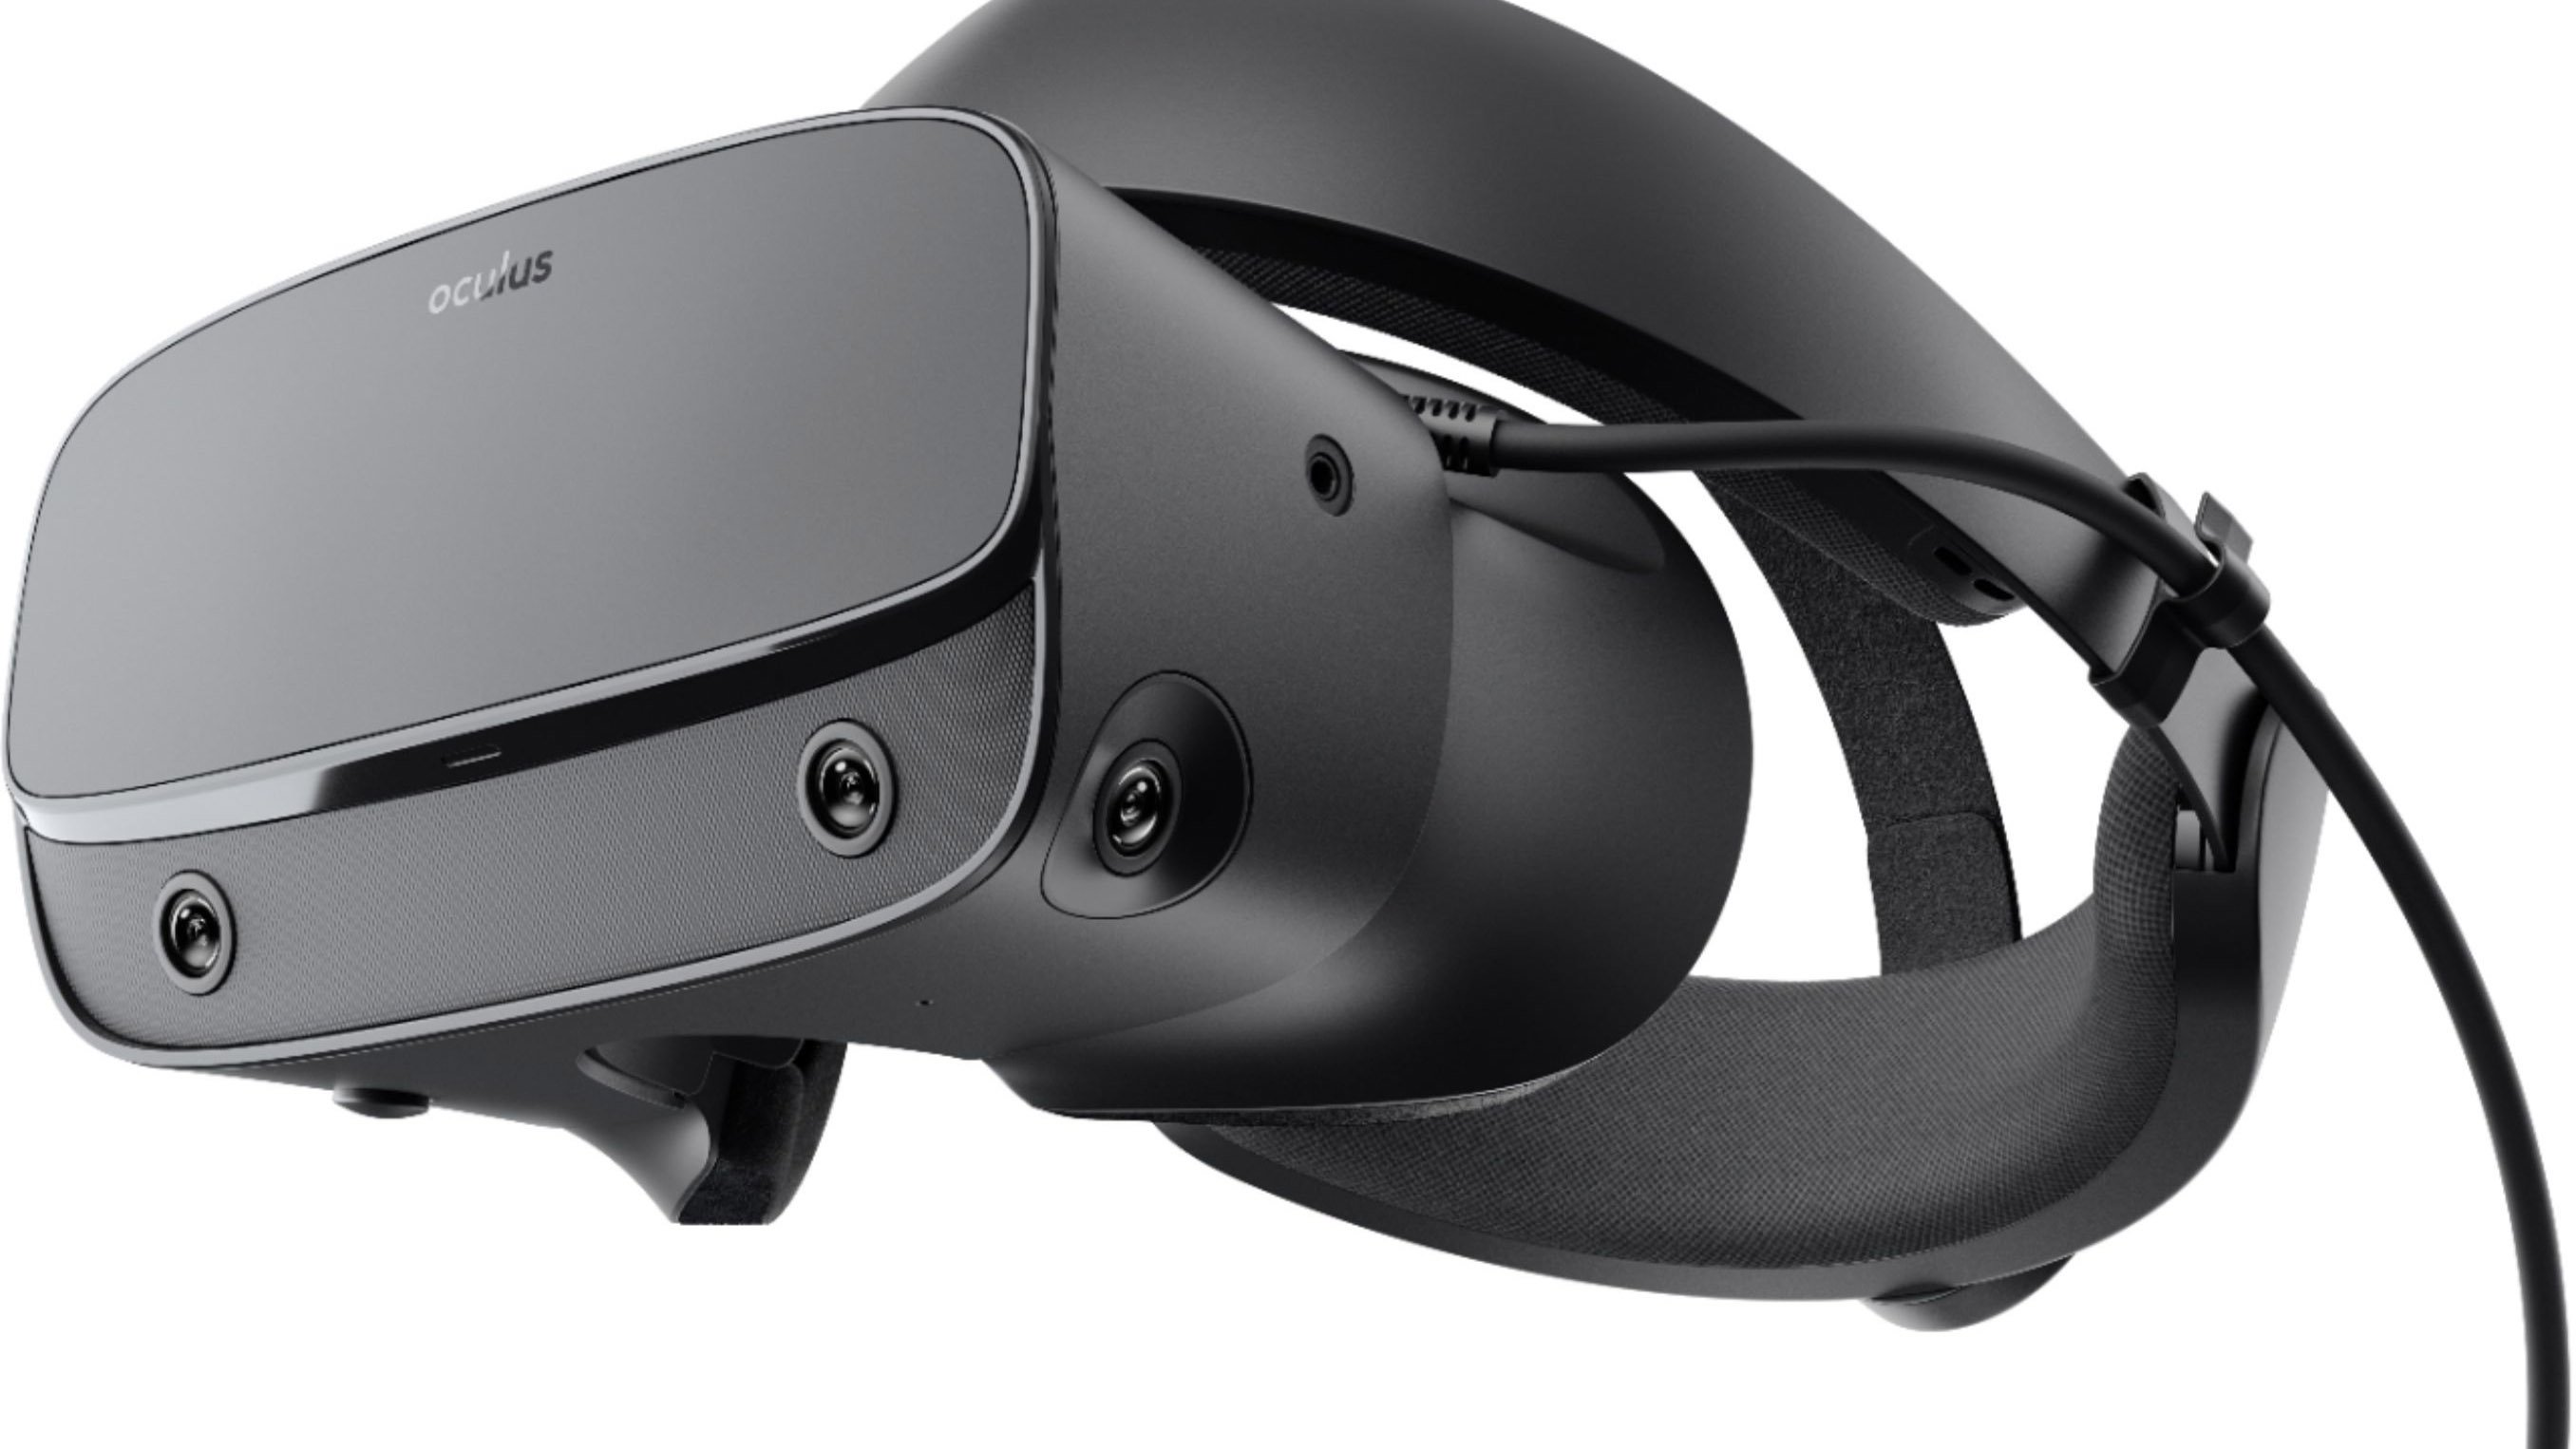 Holiday VR gift guide 2019 - Oculus headsets